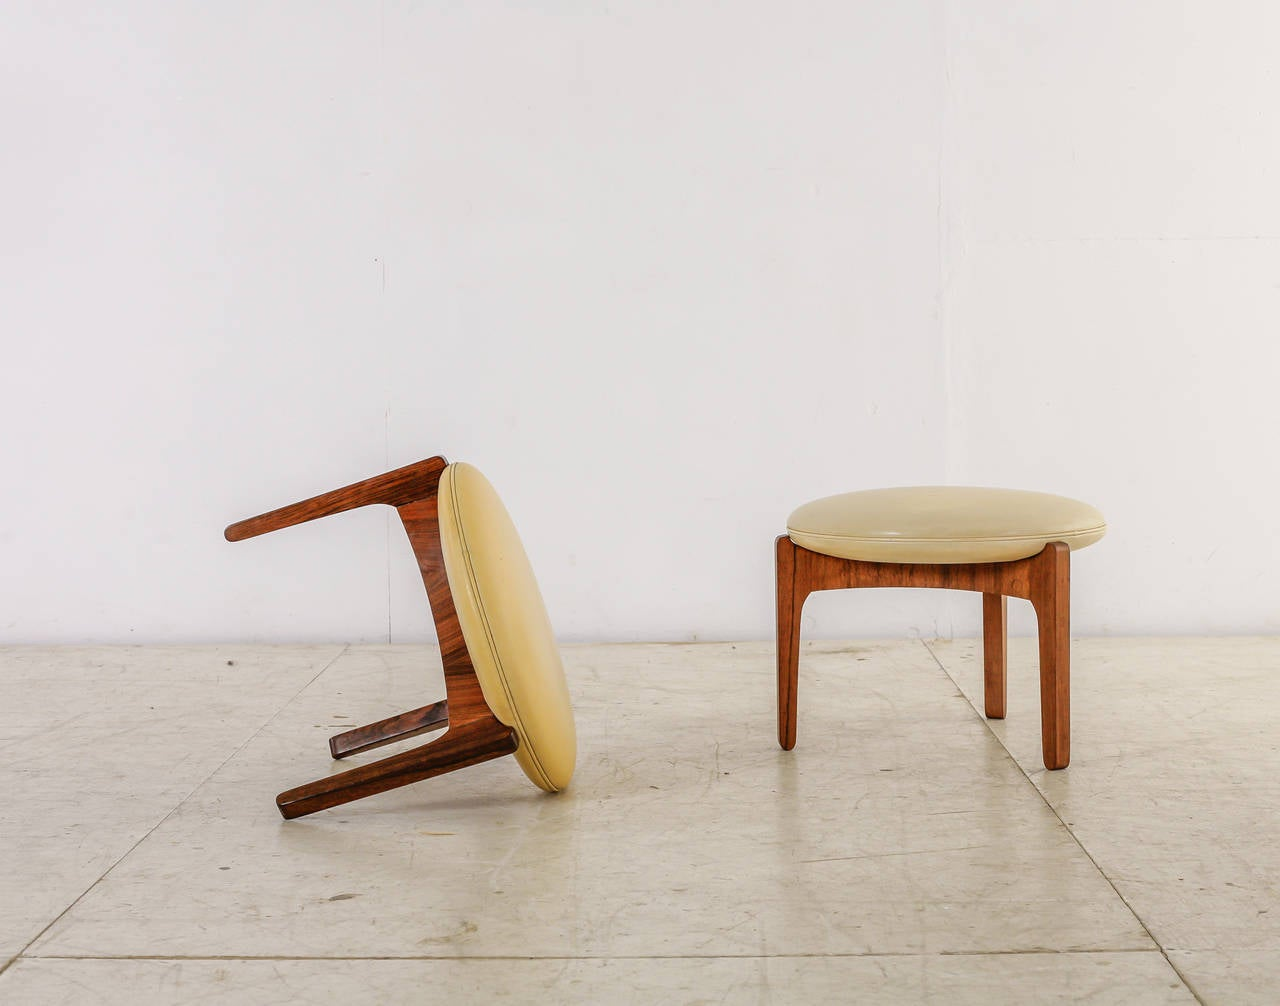 A pair of Danish 1960s tripod stools made of a rosewood frame with a leather cream colored cushion. Designed by Sven Ellekaer for Chr. Linneberg Møbelfabrik in 1962.  The stools have some minor wear, but are in an overall good condition. There are